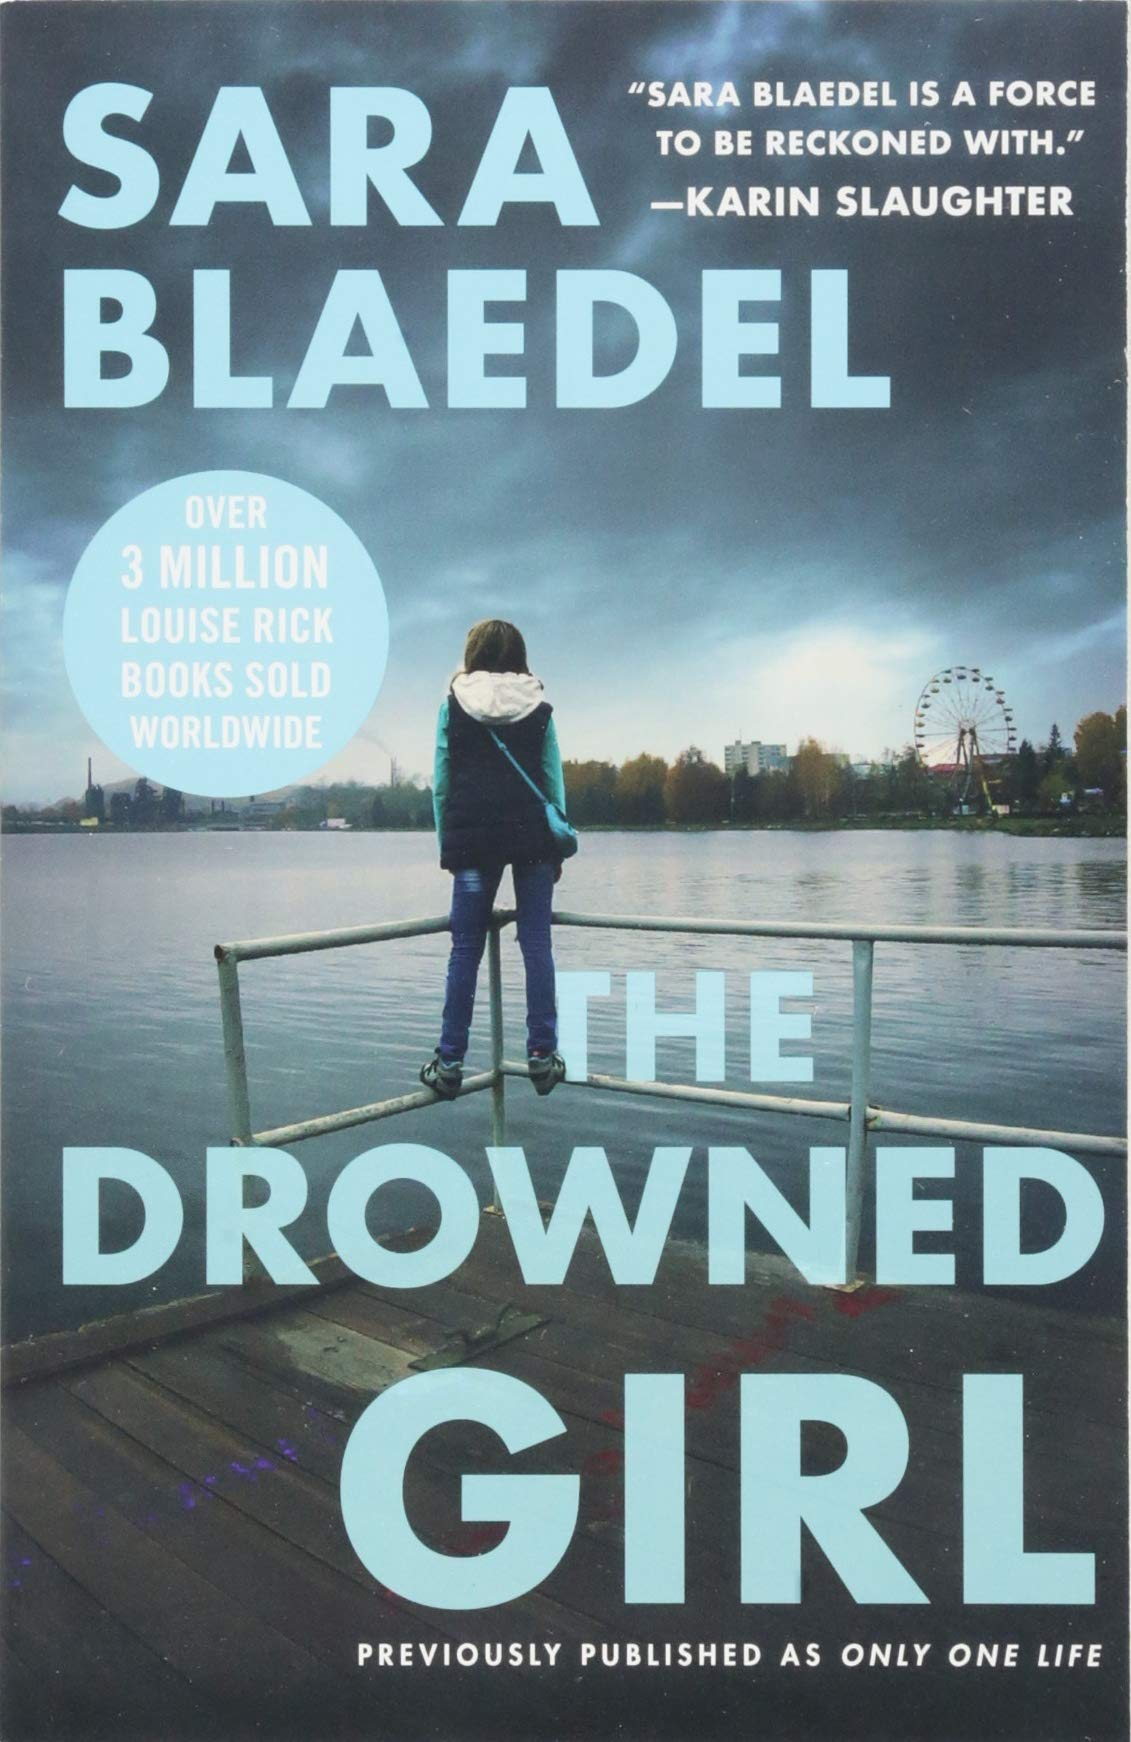 THE DROWNED GIRL by Sara Blaedel